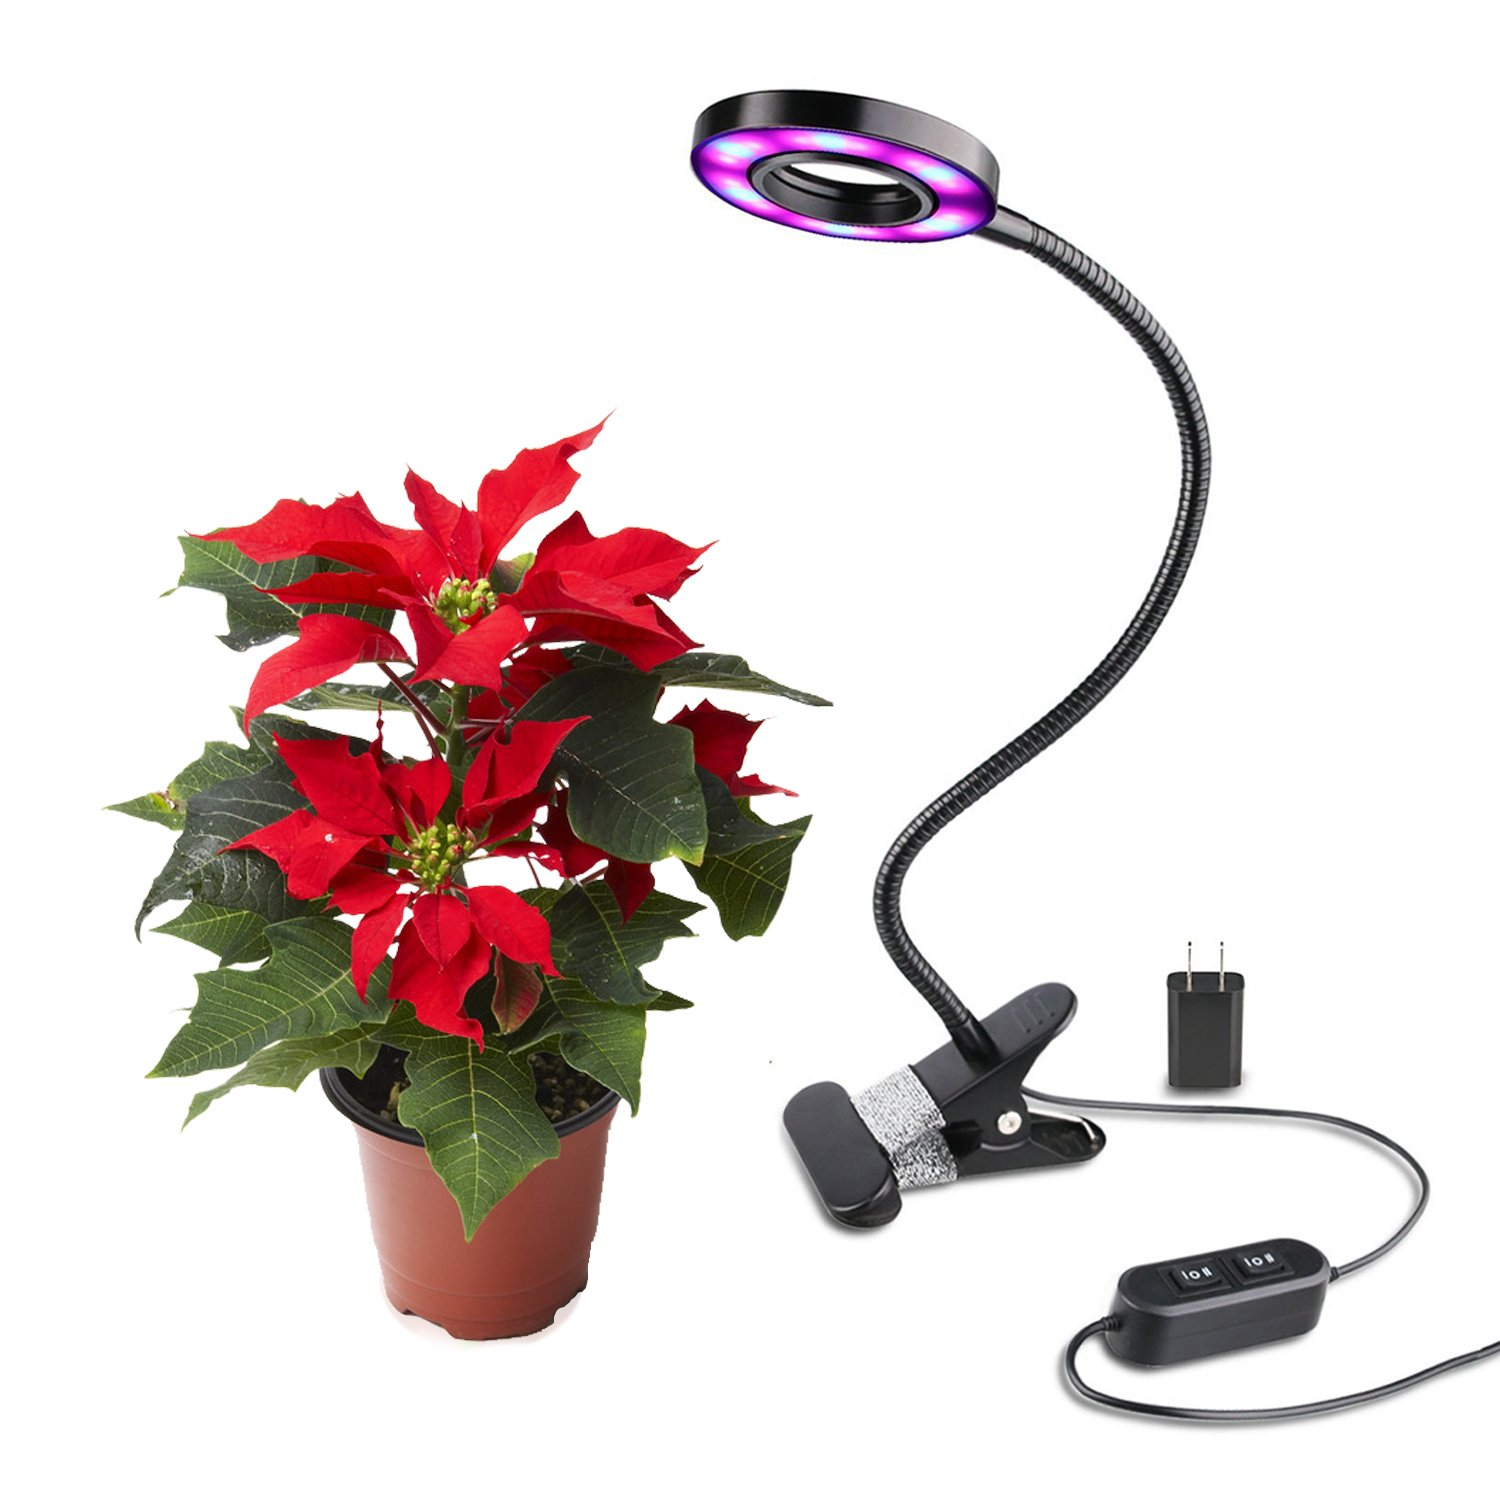 Amazon.com : Led Grow Light 10 W Desk Lamp Clip for Indoor Plant & Hydroponics - BOOCOSA : Patio, Lawn & Garden